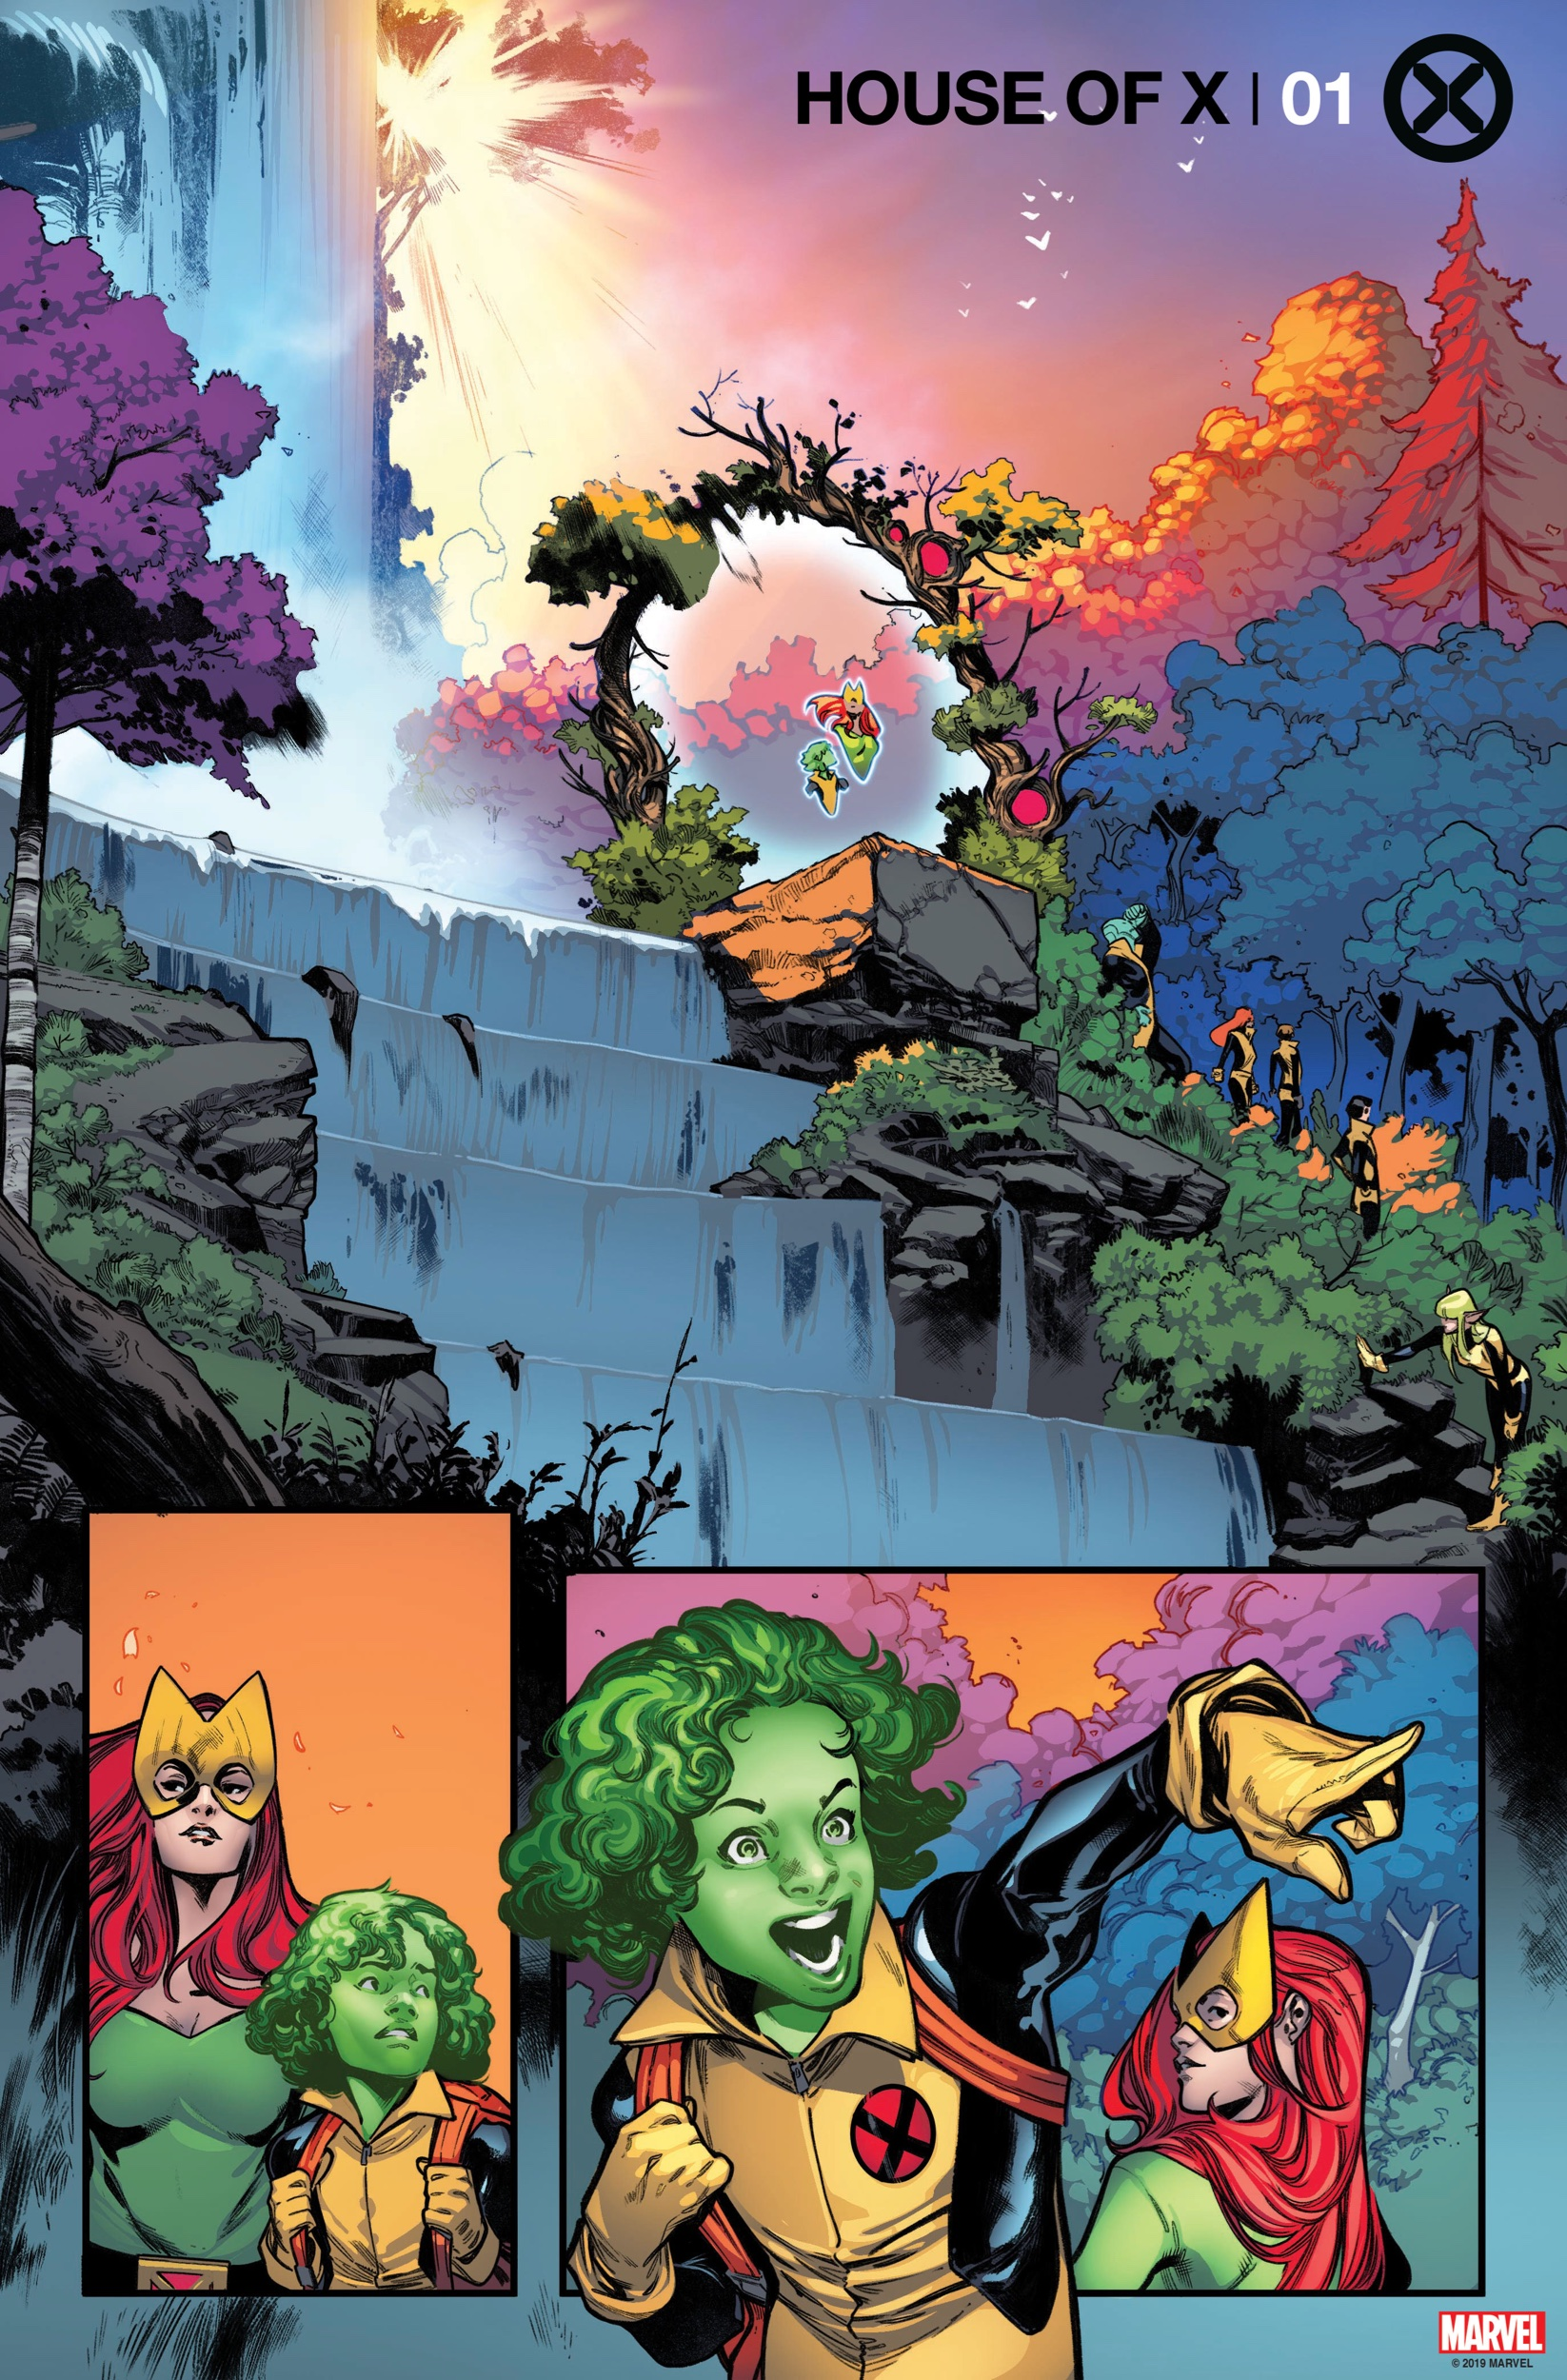 House of X #1 interiors